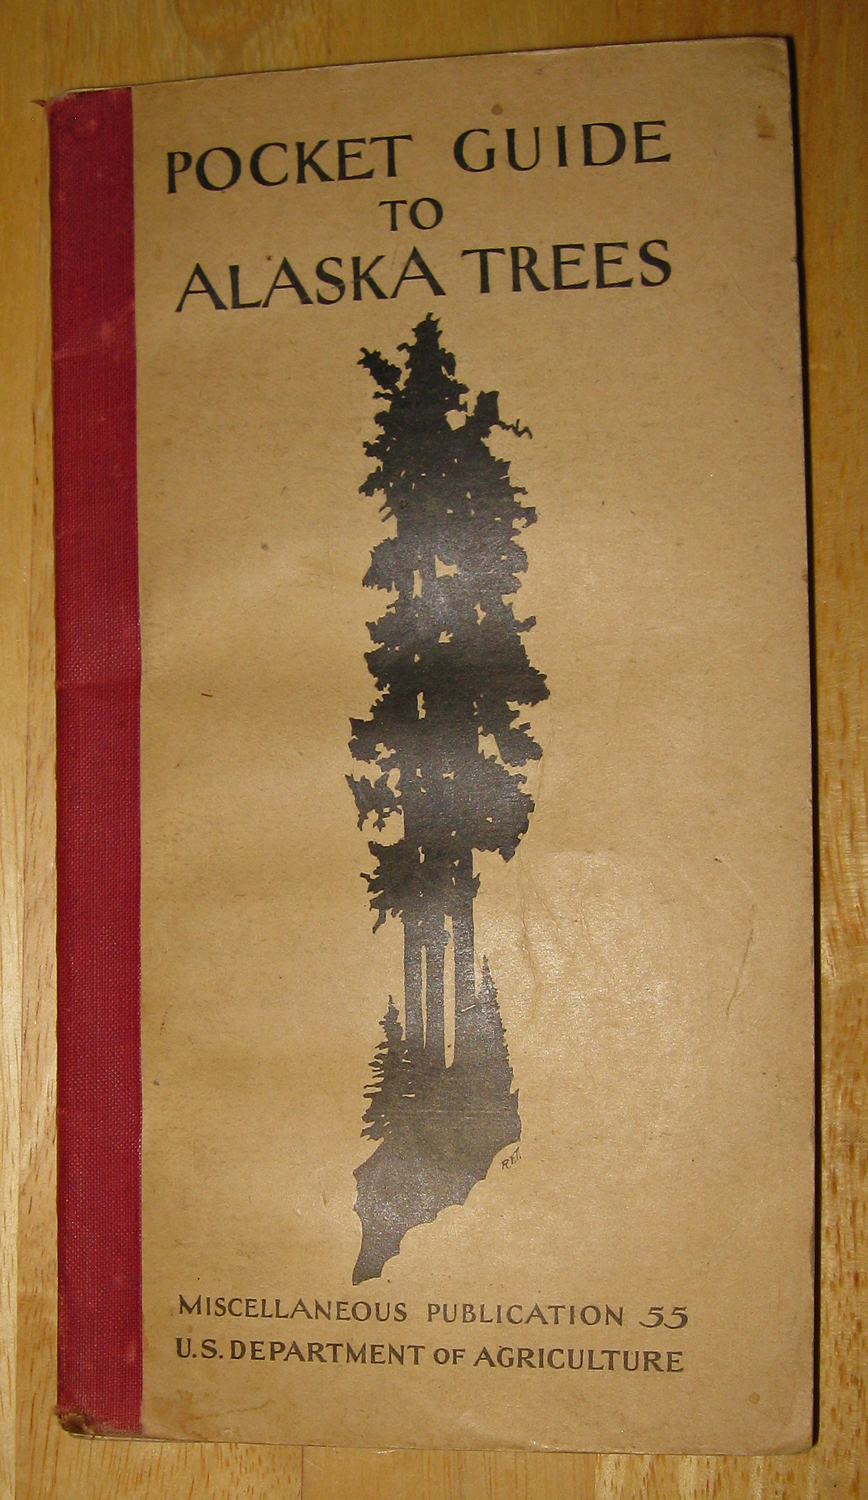 1929 copy of Pocket Guide to Alaska Trees USDA Forest Service